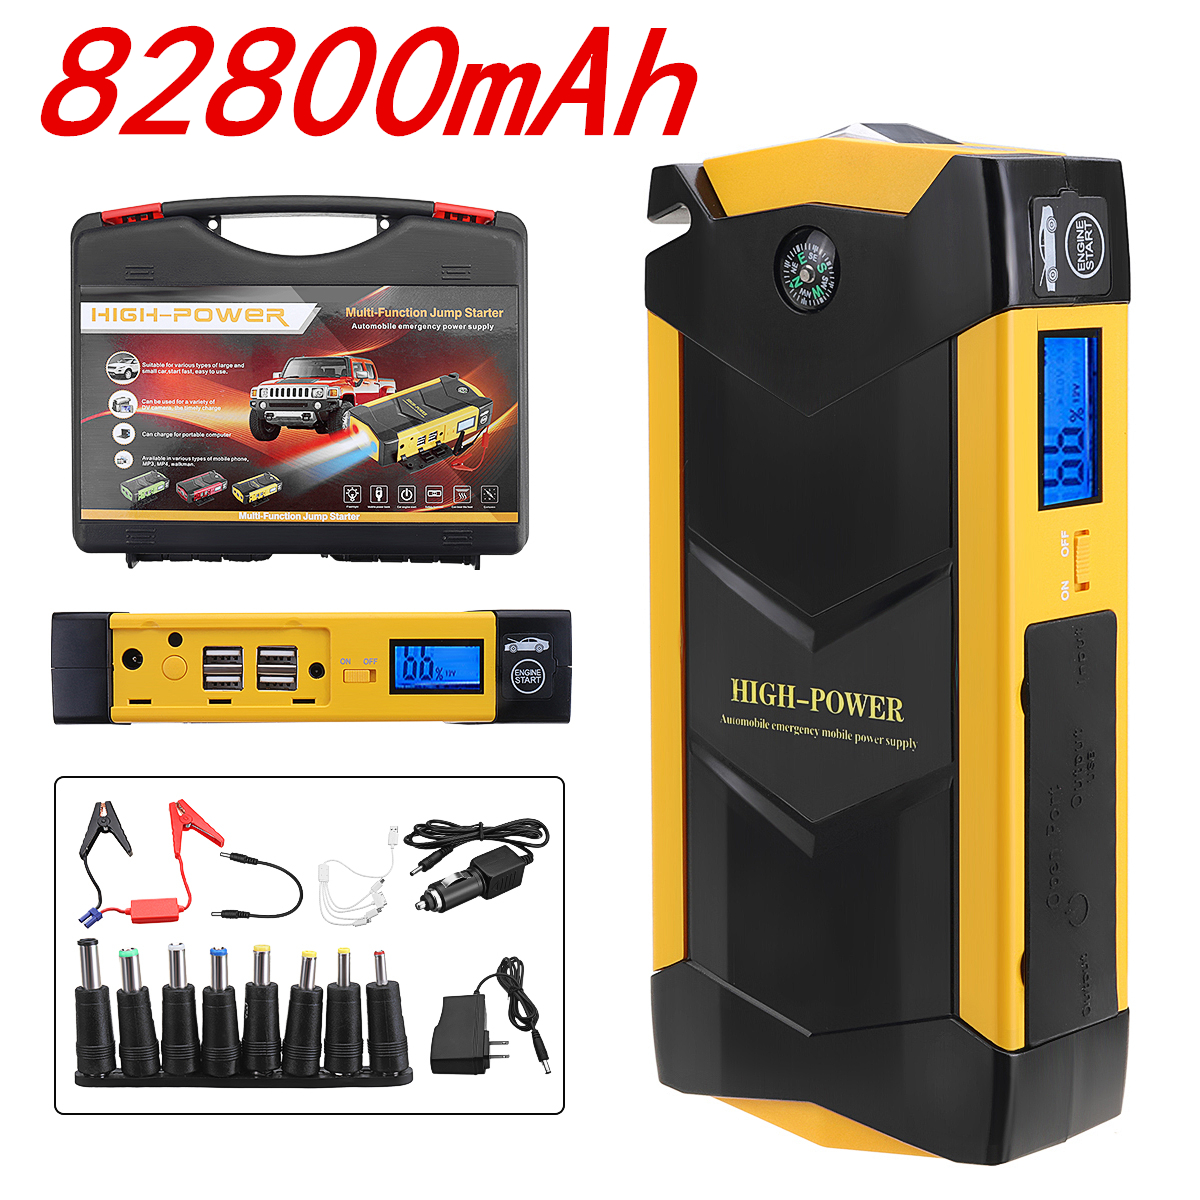 82800mAh High Power Car Jump Starter 12V Portable Starting Device Power Bank Car Charger For Car Battery Booster Buster 4 USB